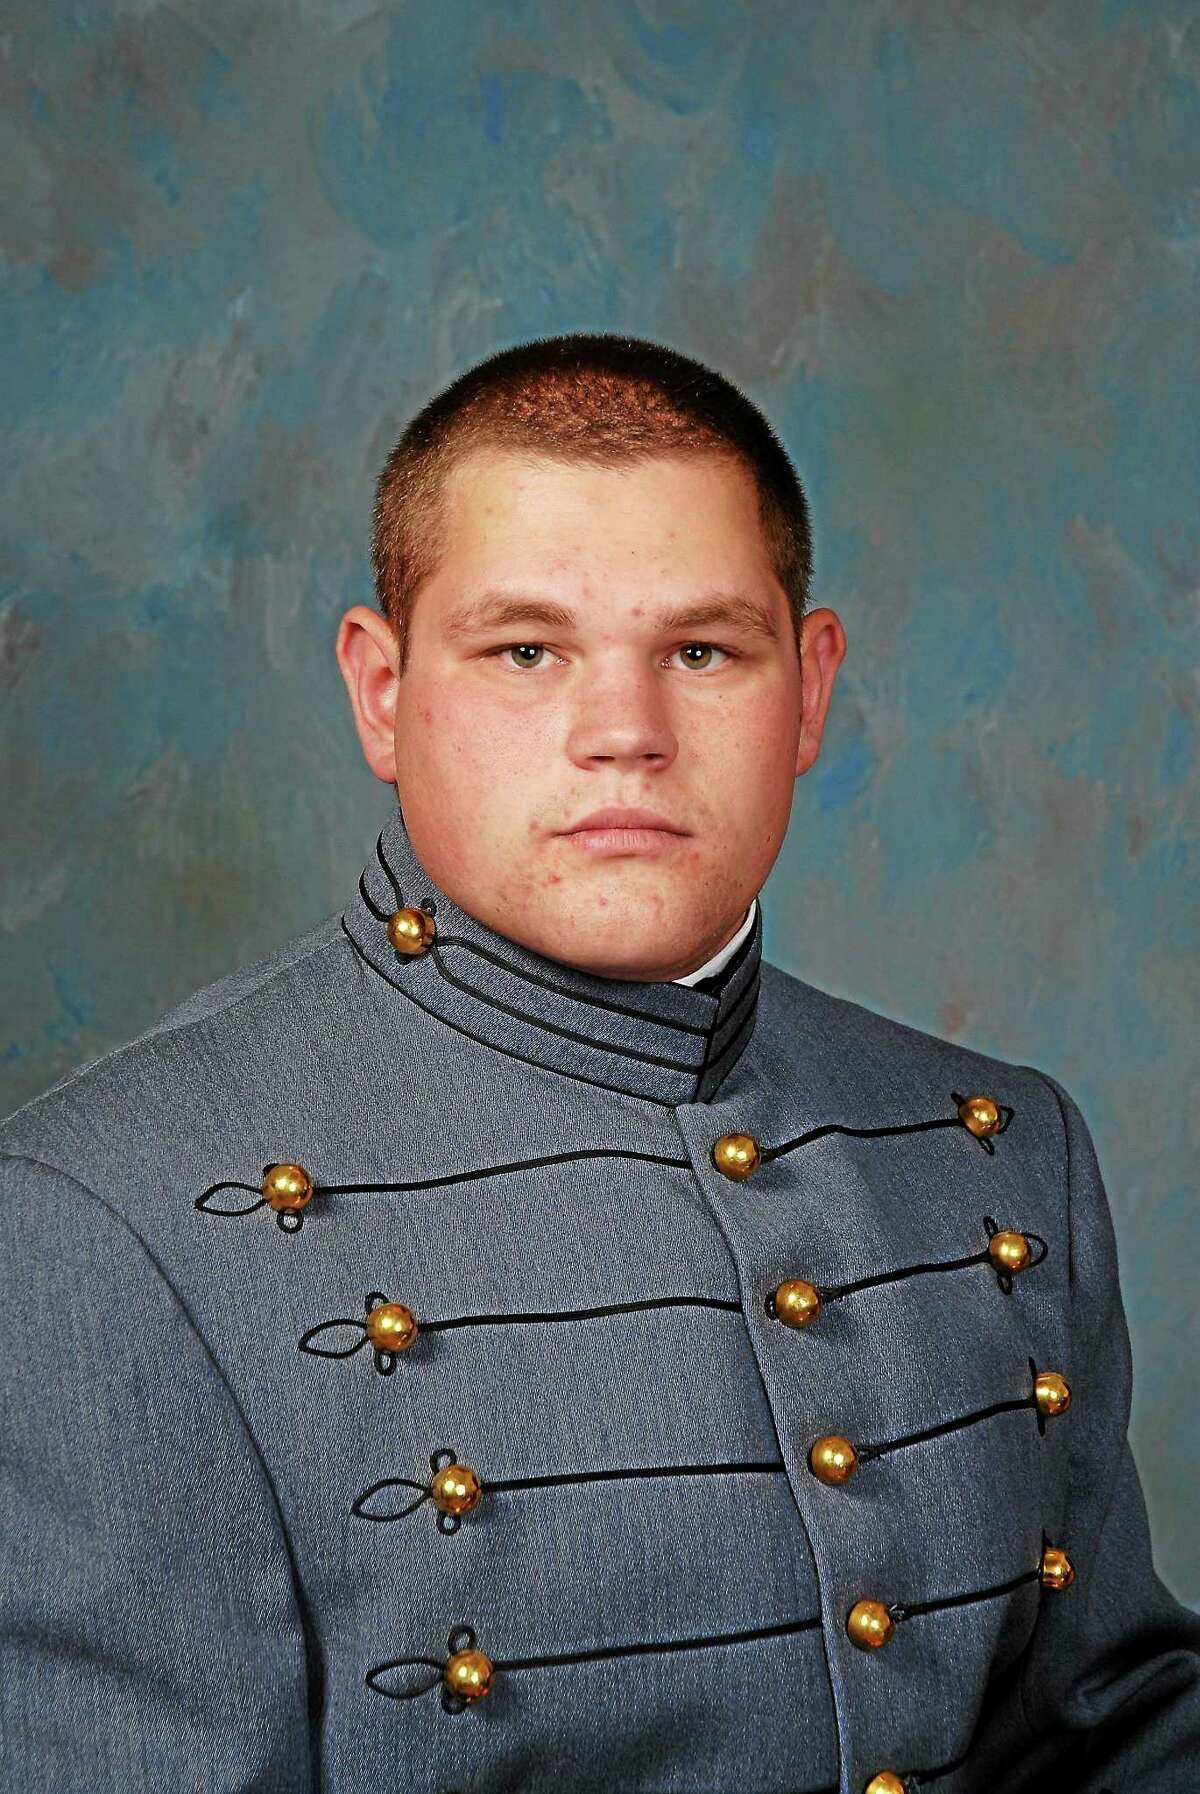 Milford native and Notre Dame-West Haven grad Steve Shumaker will suit up for Army Saturday as the Black Knights take on Yale on the 100th birthday of Yale Bowl.